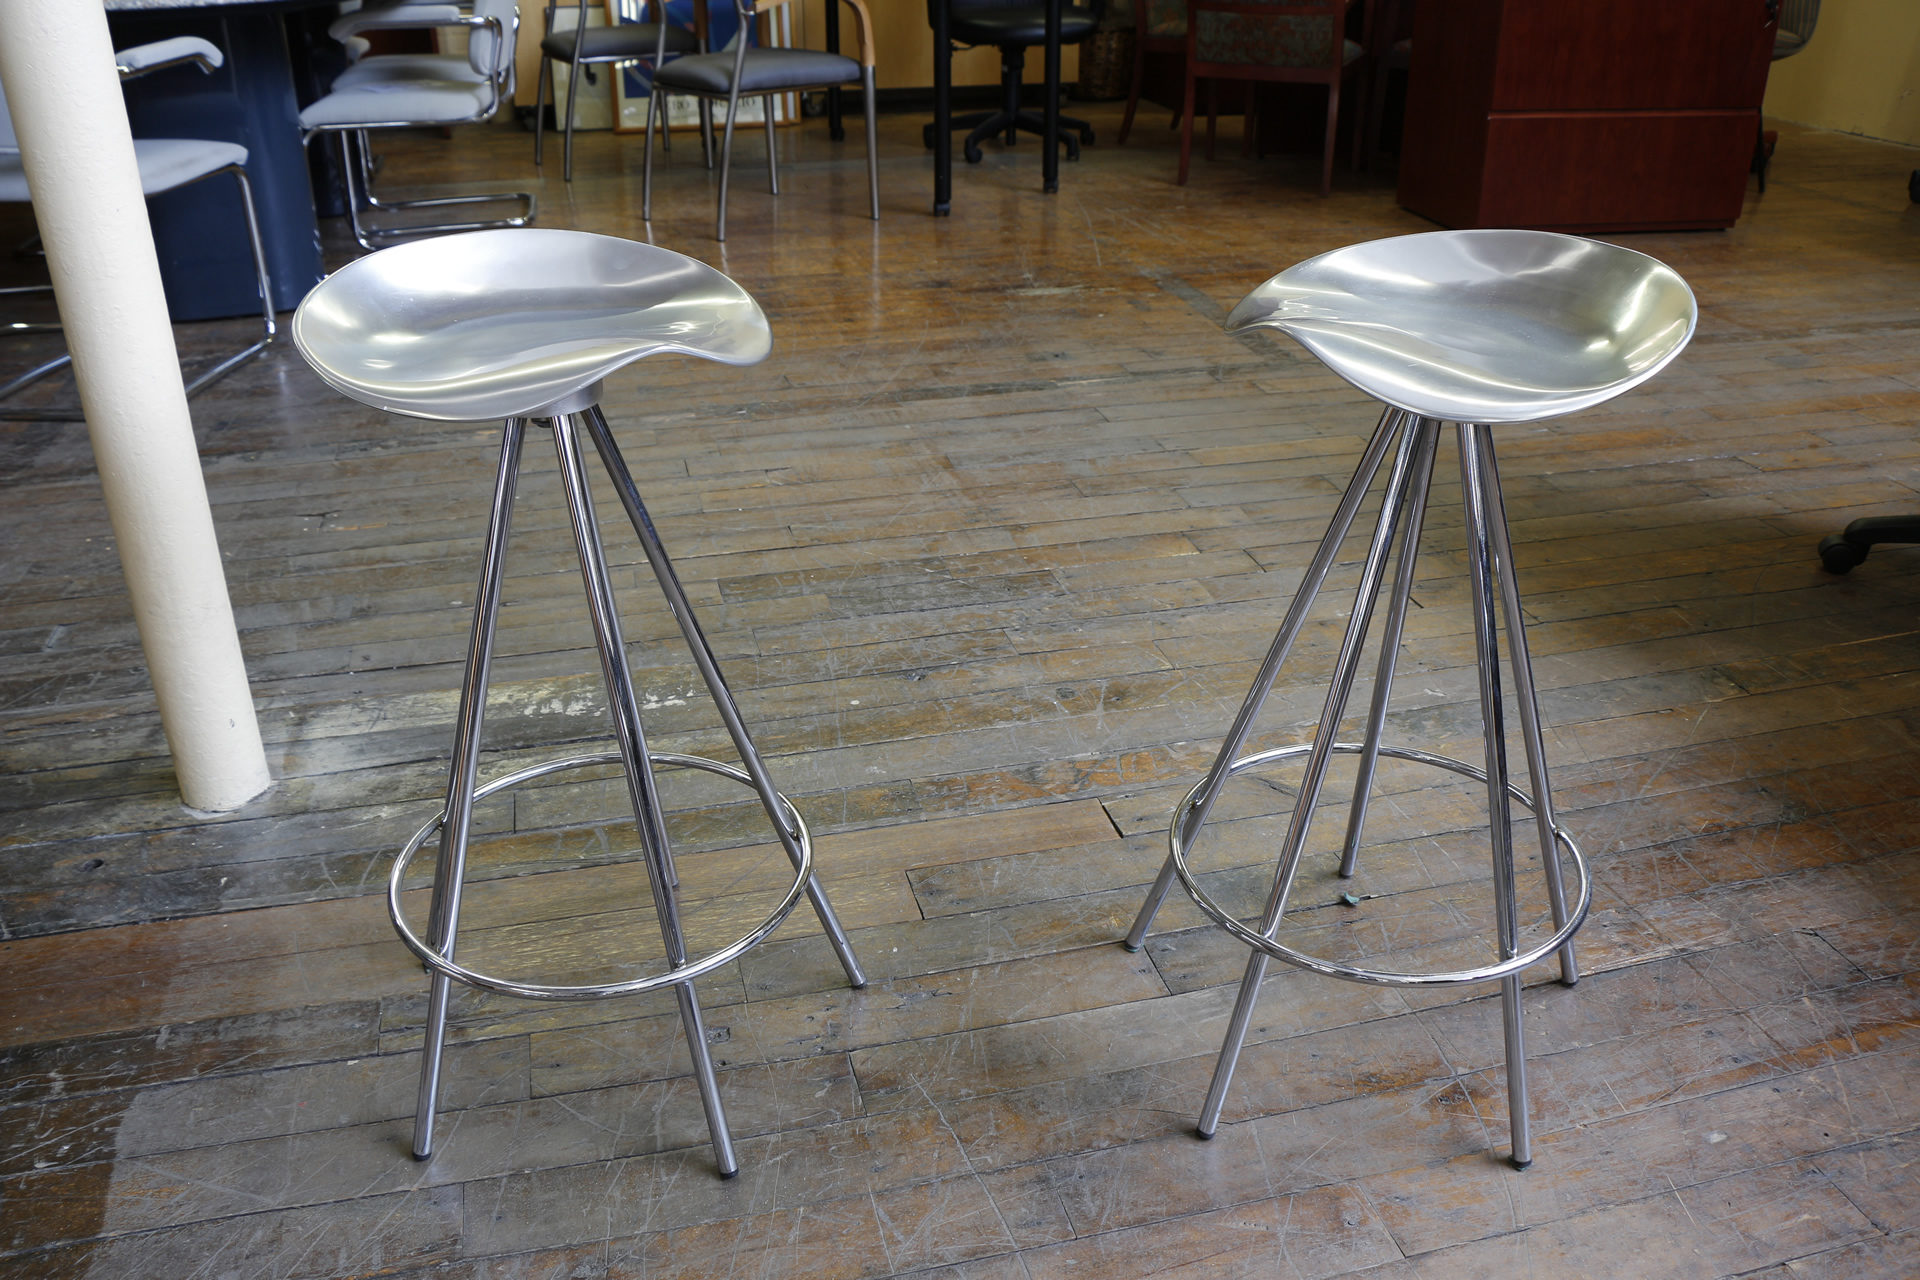 Knoll Jamaica Stools by Pepe Cortes – Counter Height